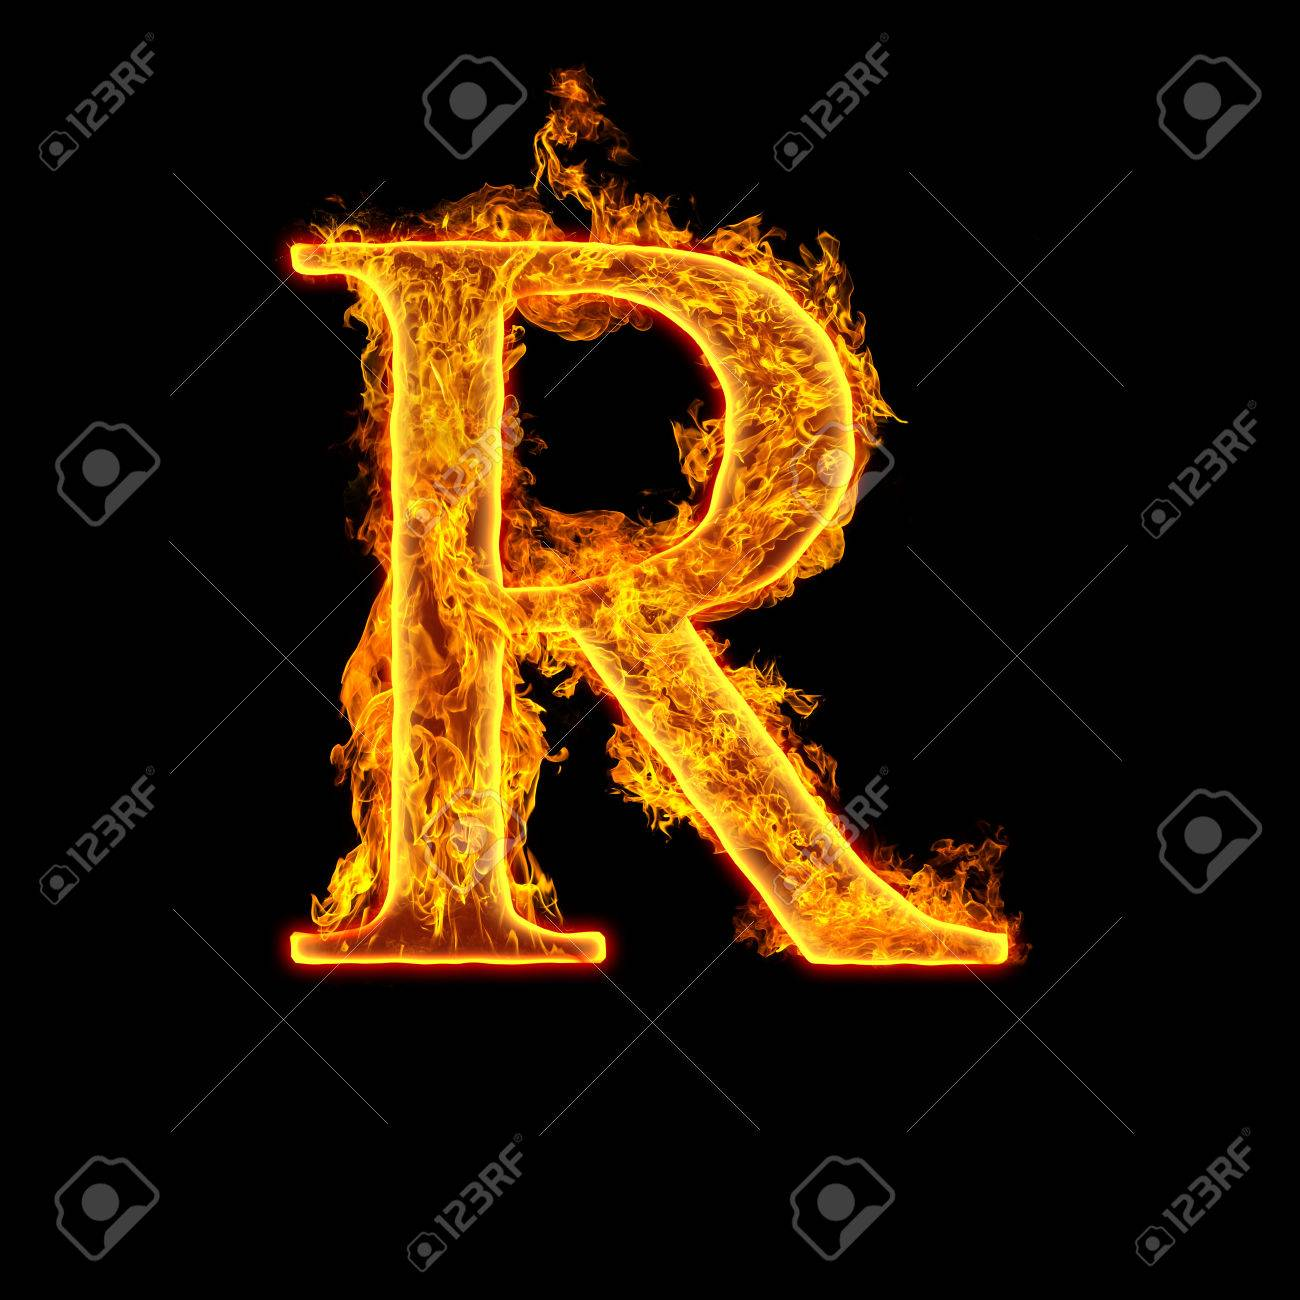 Fire Alphabet Letter R Isolated On Black Background Stock Photo Picture And Royalty Free Image Image 22914320